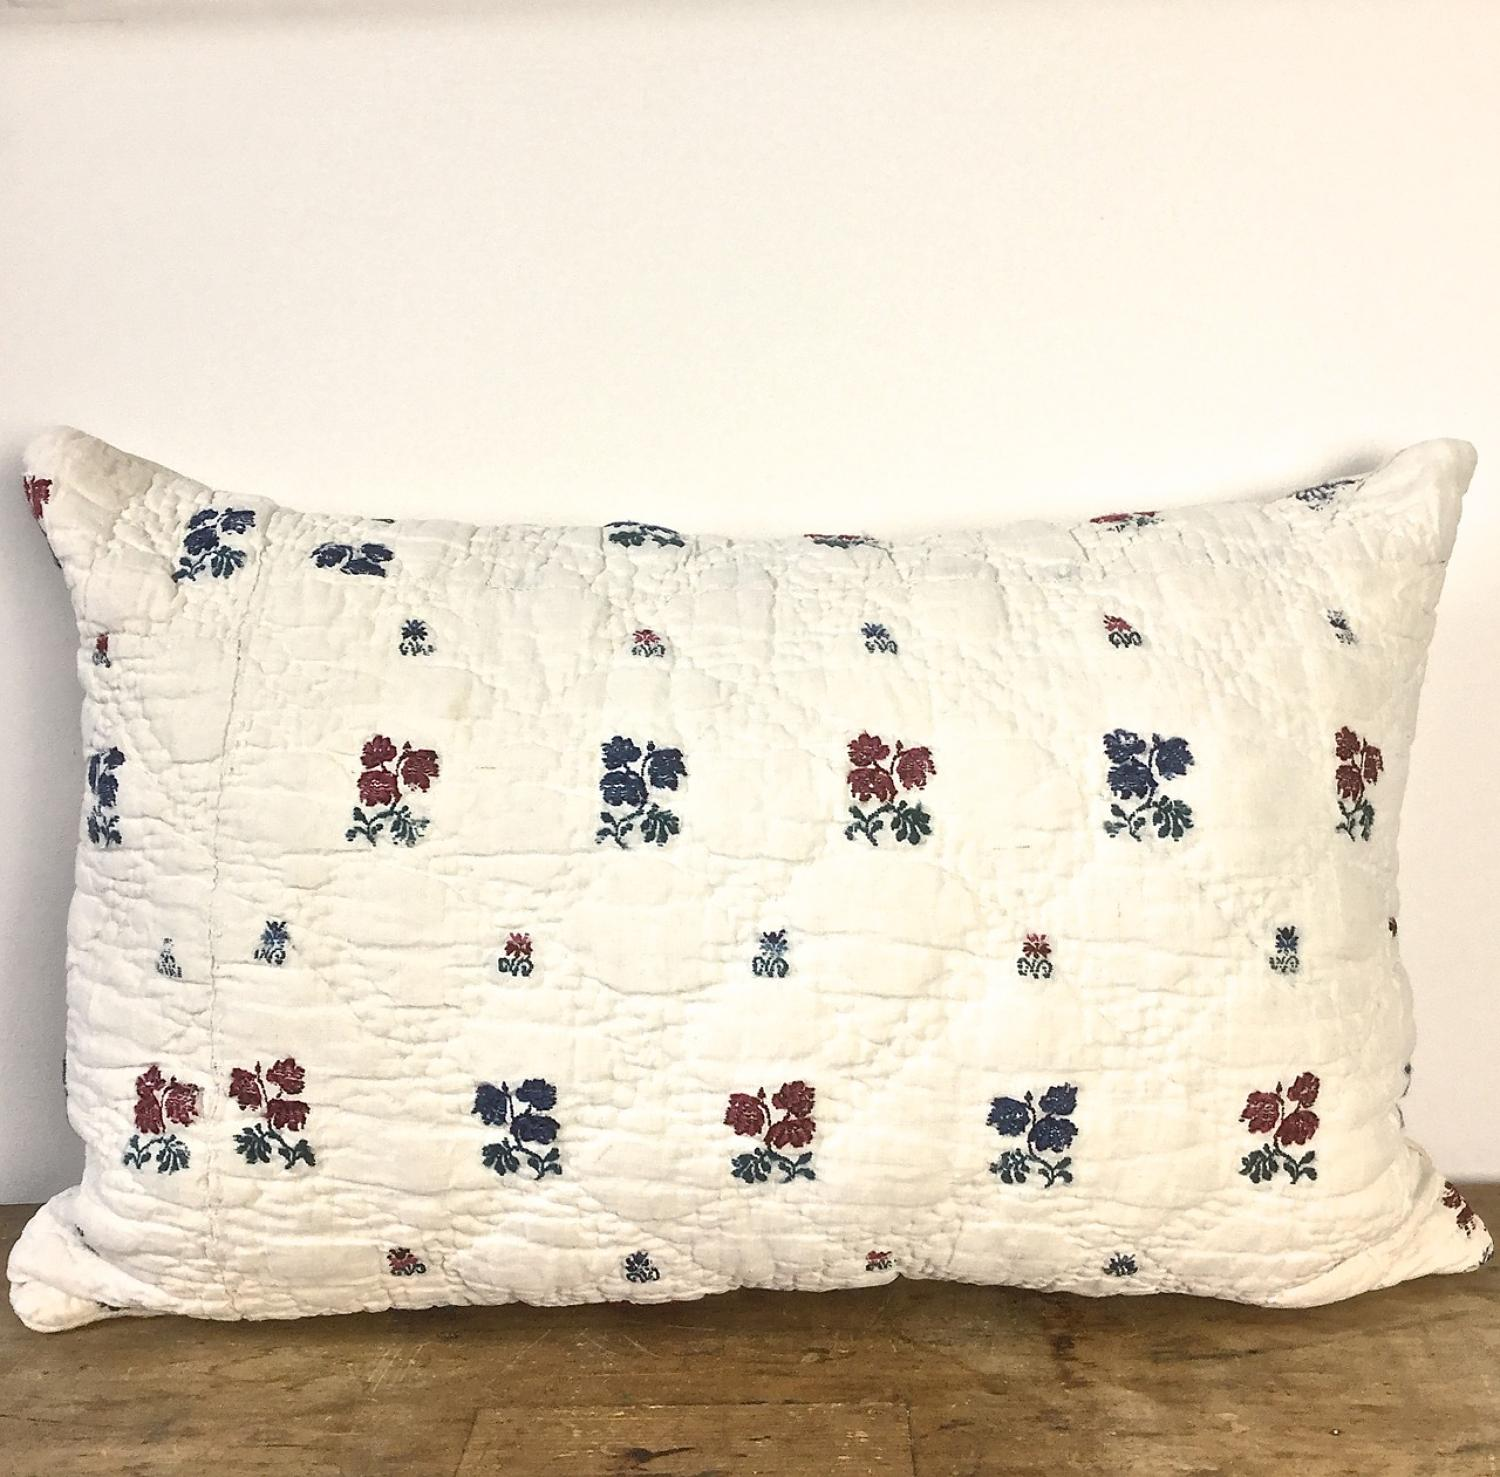 Late 18th century French wool woven on linen cushion